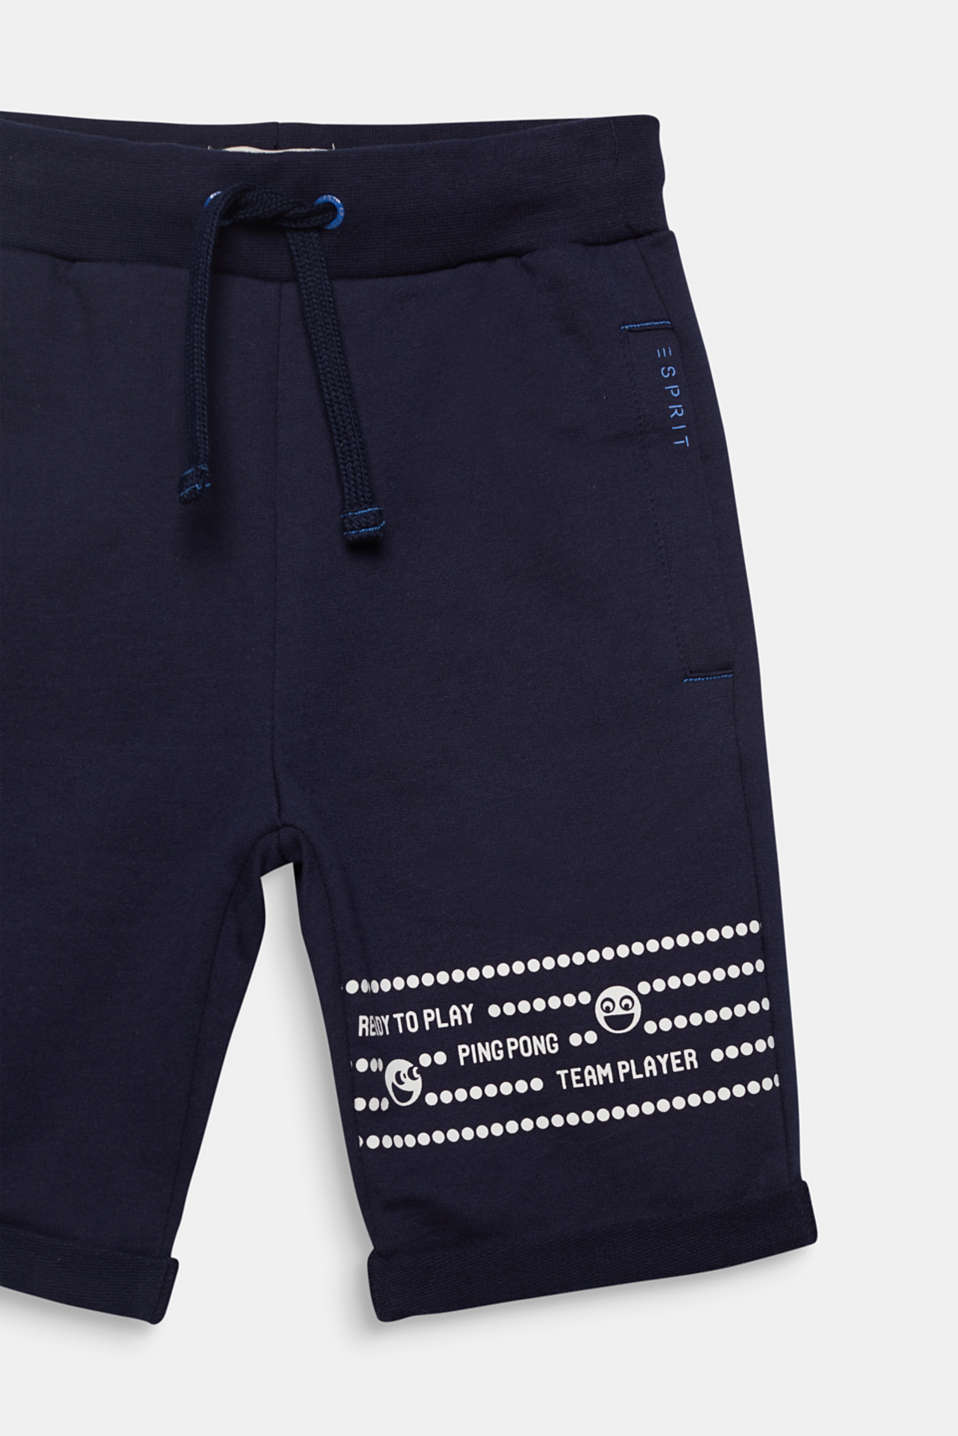 Sweatshirt tracksuit bottoms with a print, 100% cotton, MIDNIGHT BLUE, detail image number 2